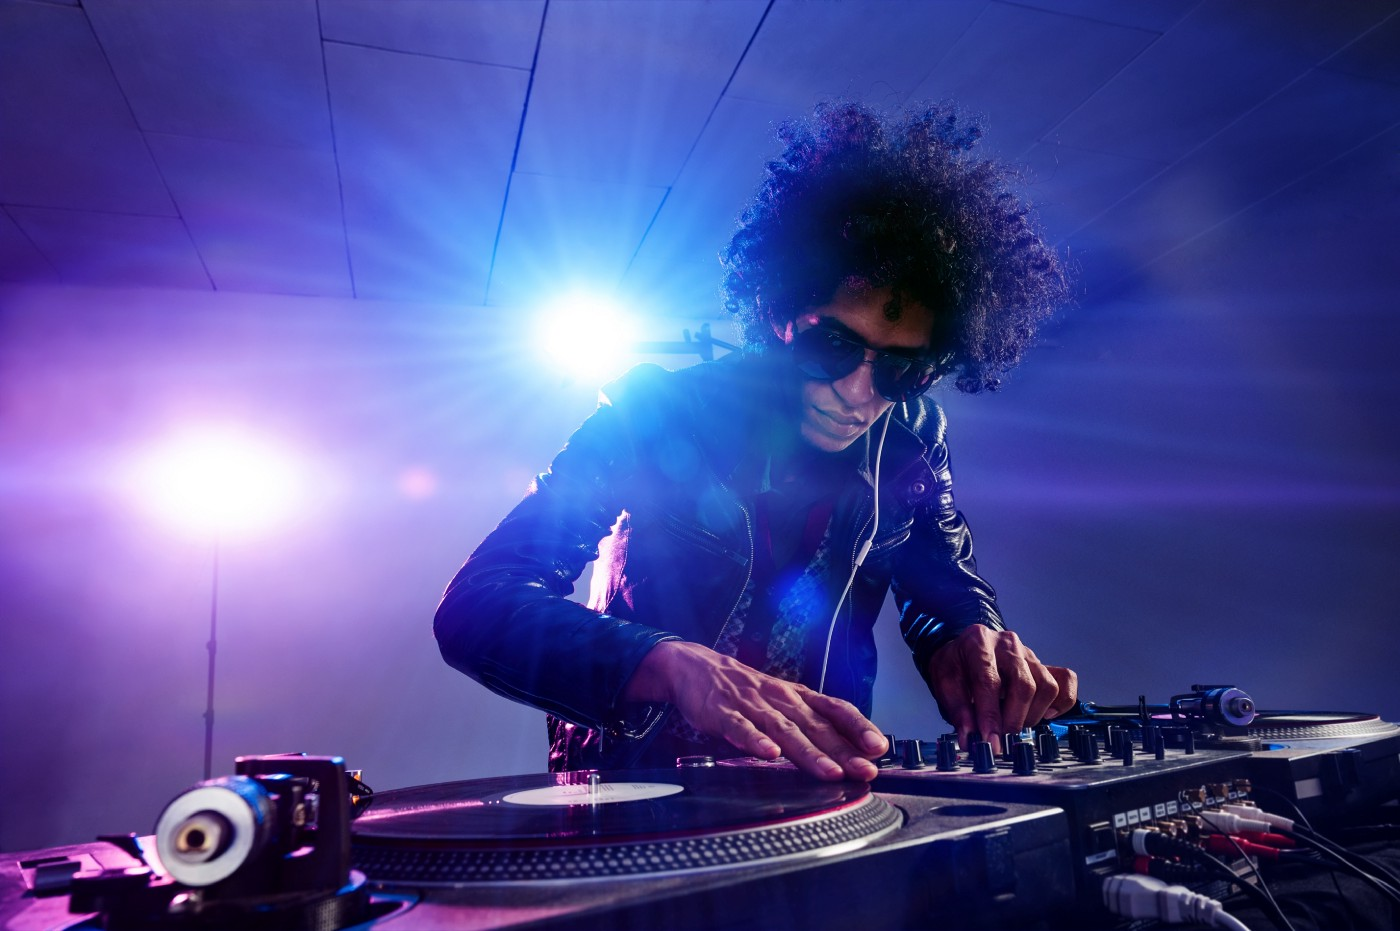 Cool DJ with sunglasses, silhouetted by strobe light, over turntable, intently trying to connect to the crowd with his music